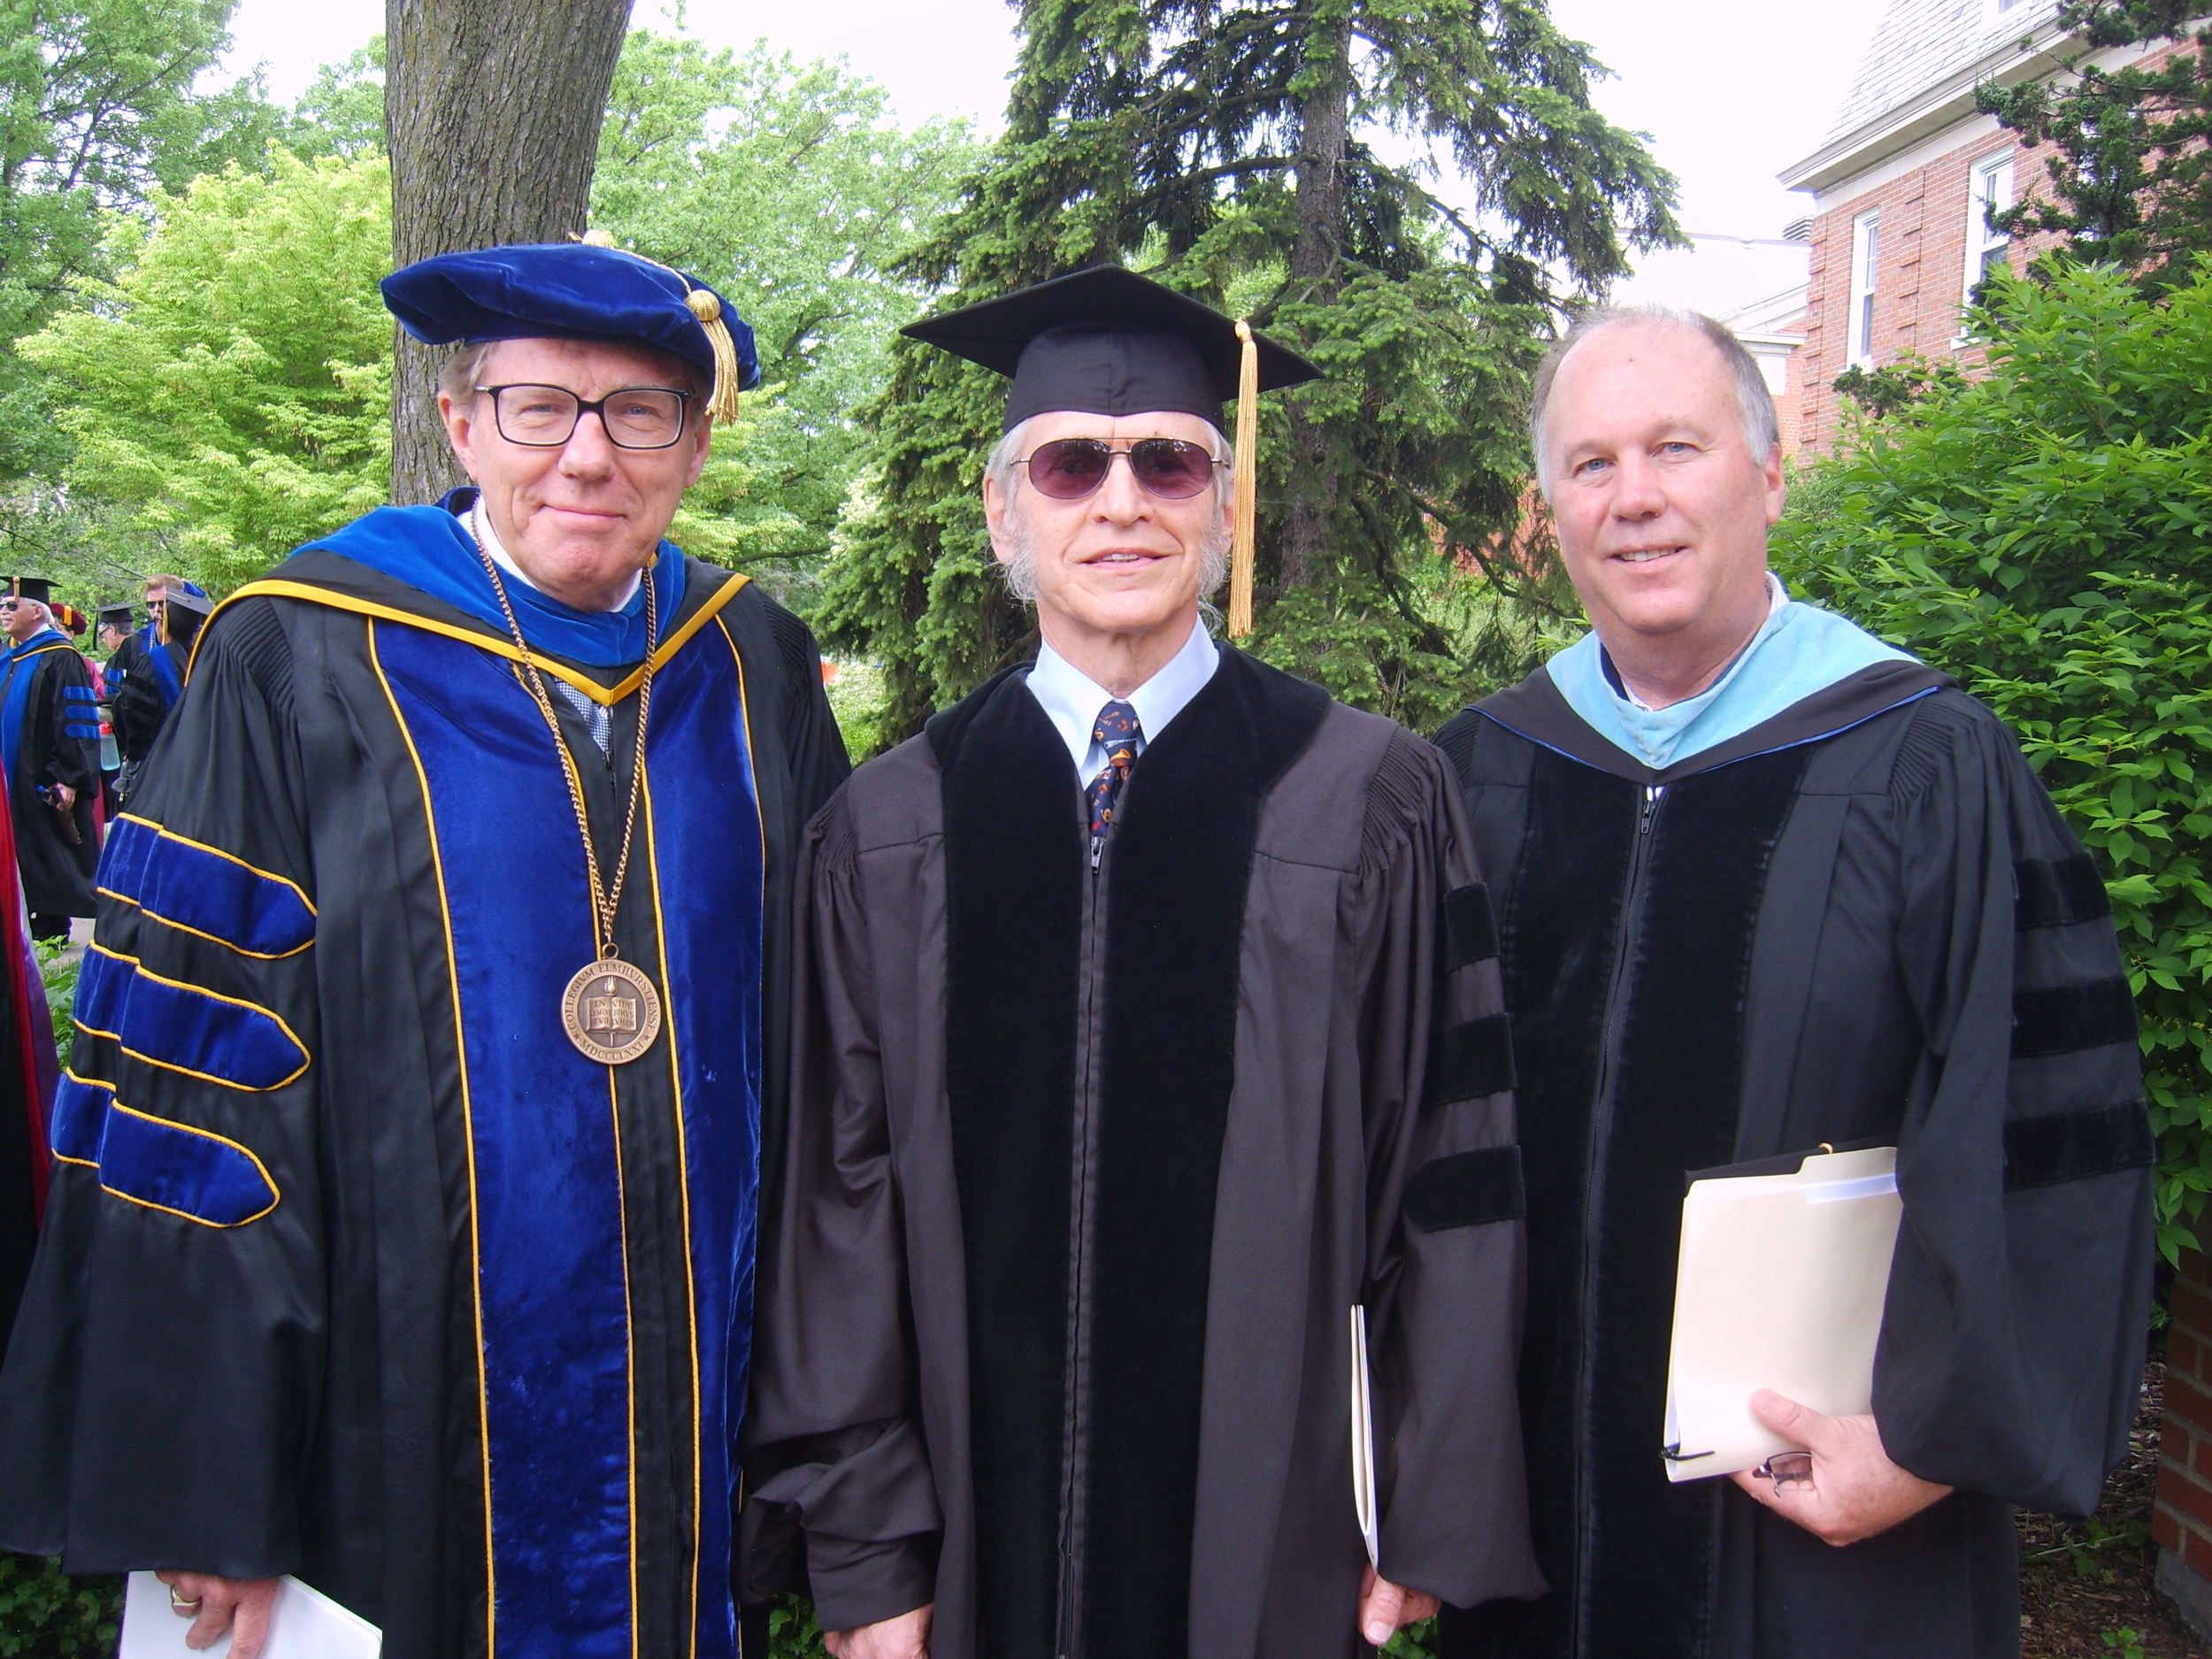 Fred Gretsch is flanked by Elmhurst College Interim President Larry Braskamp (left) and Music Department Chair Peter Griffin.